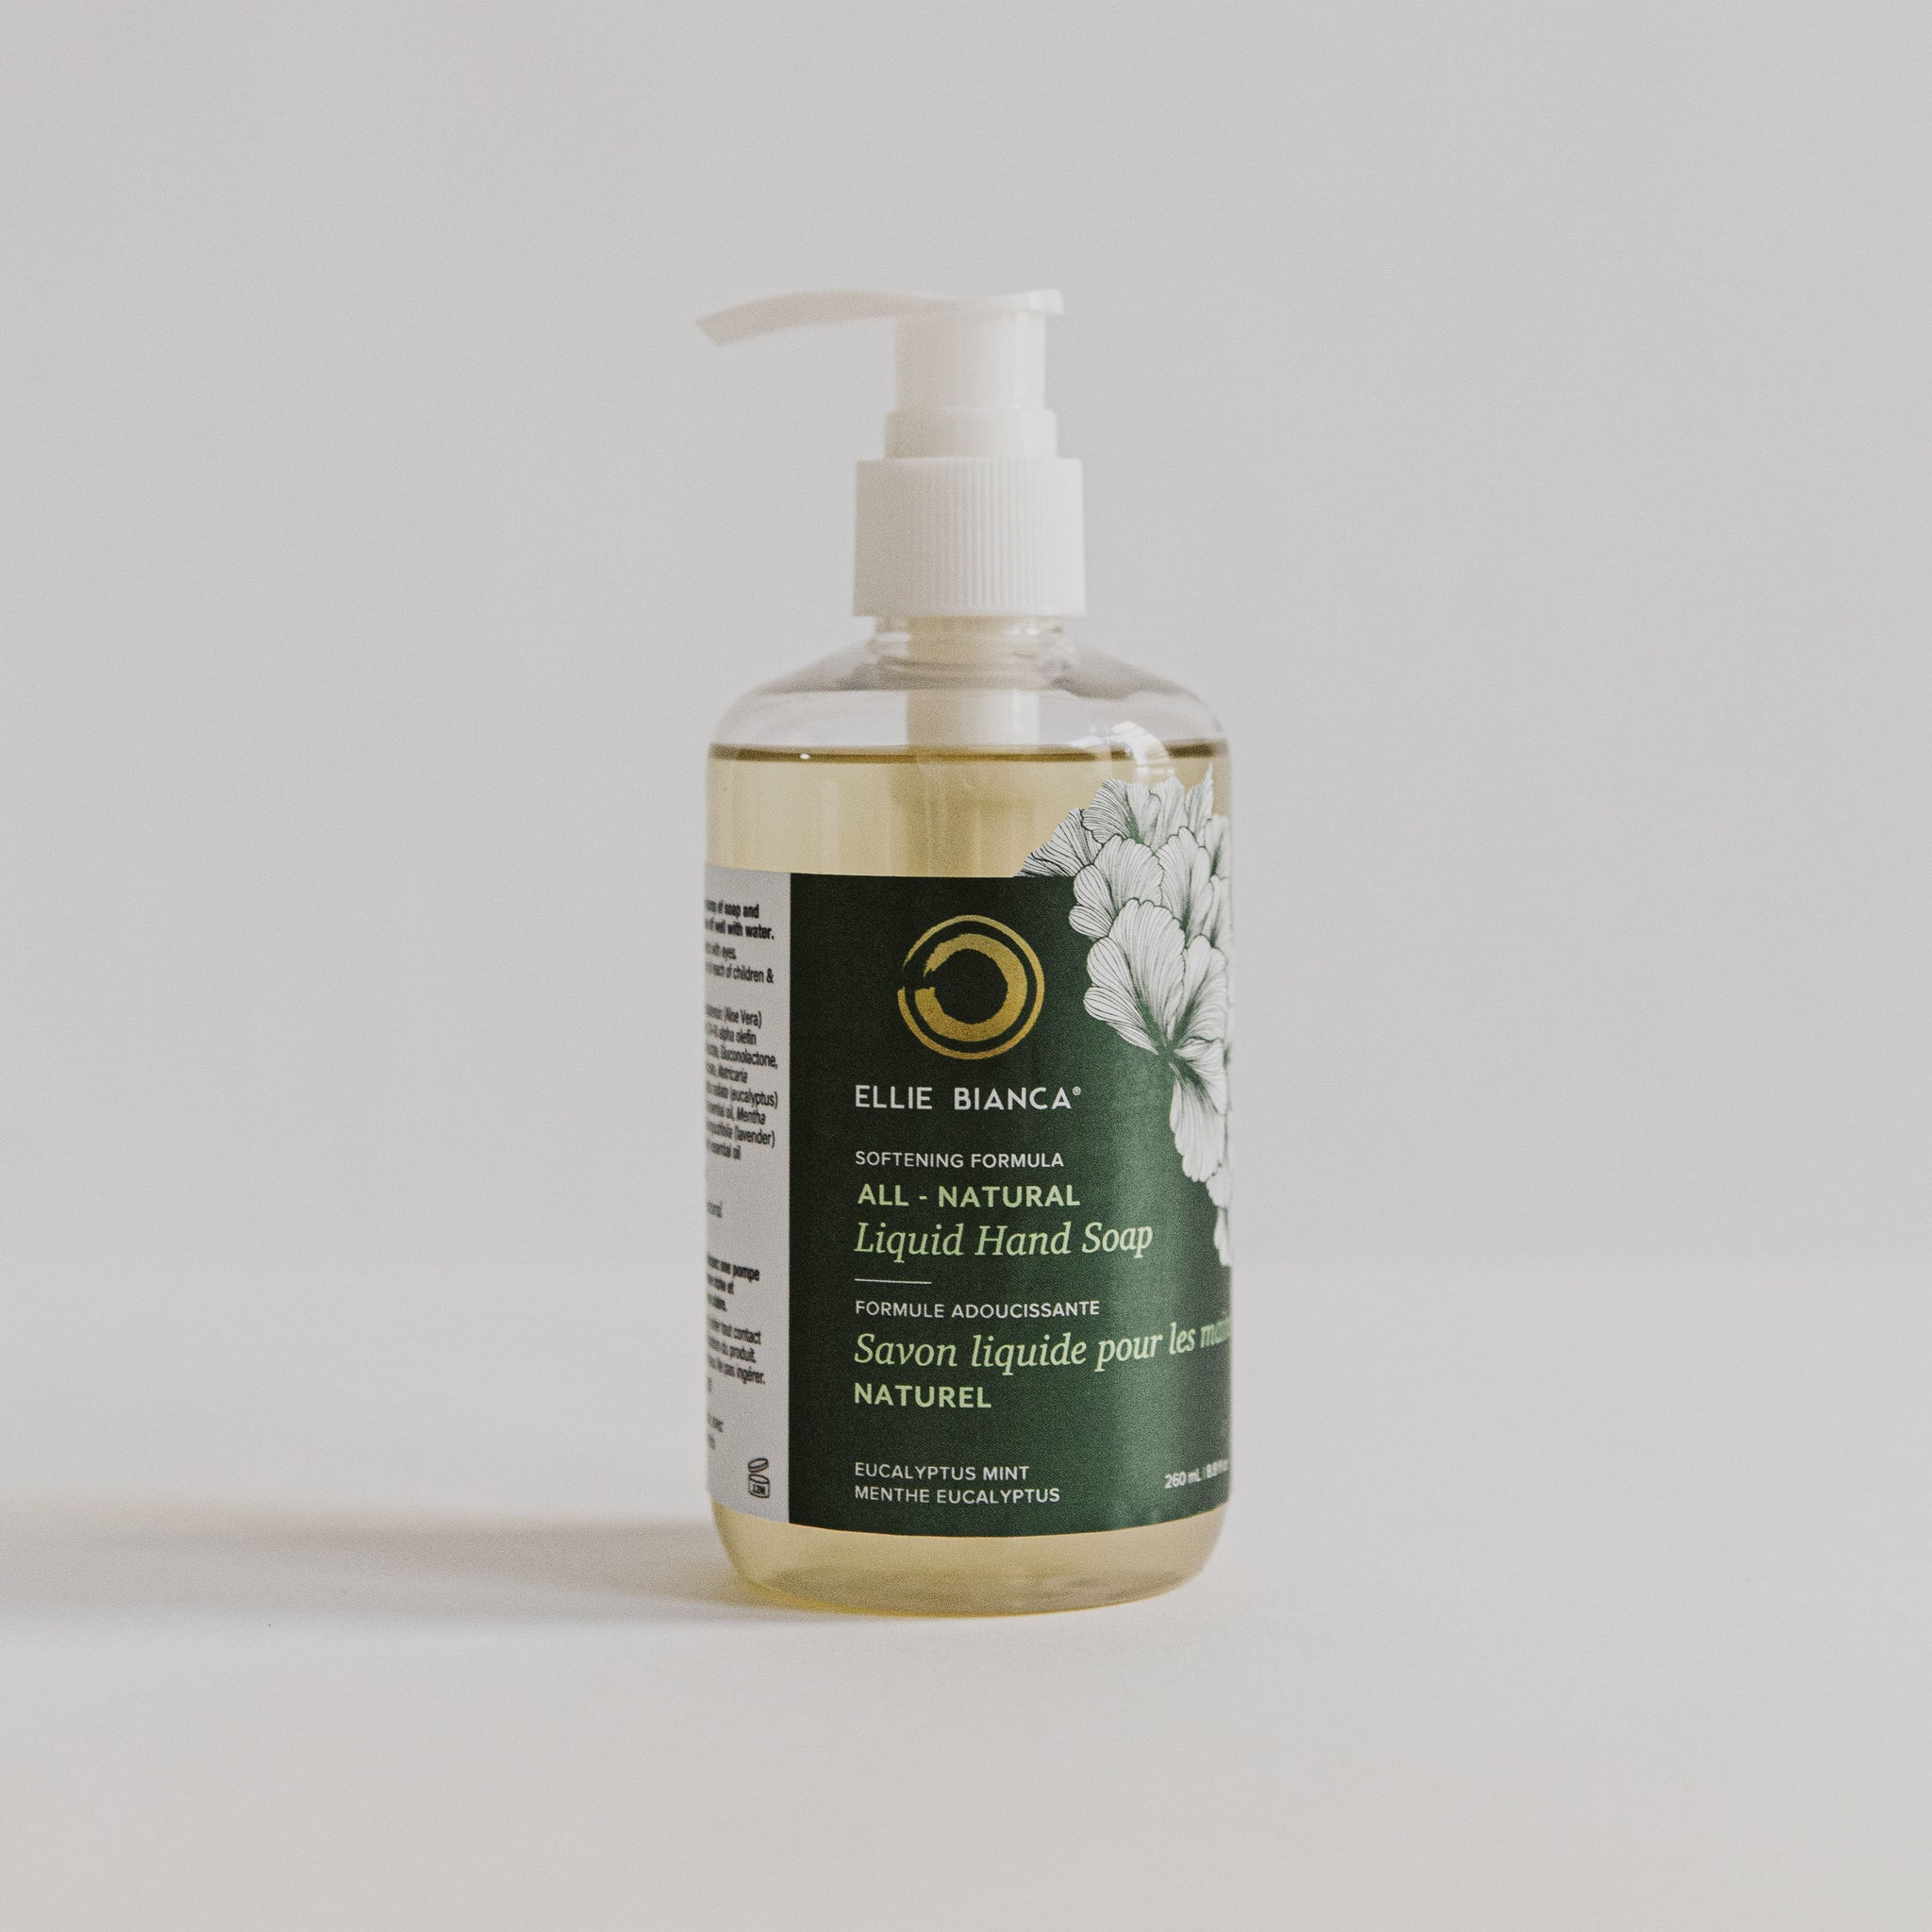 Eucalyptus Mint Liquid Hand Soap